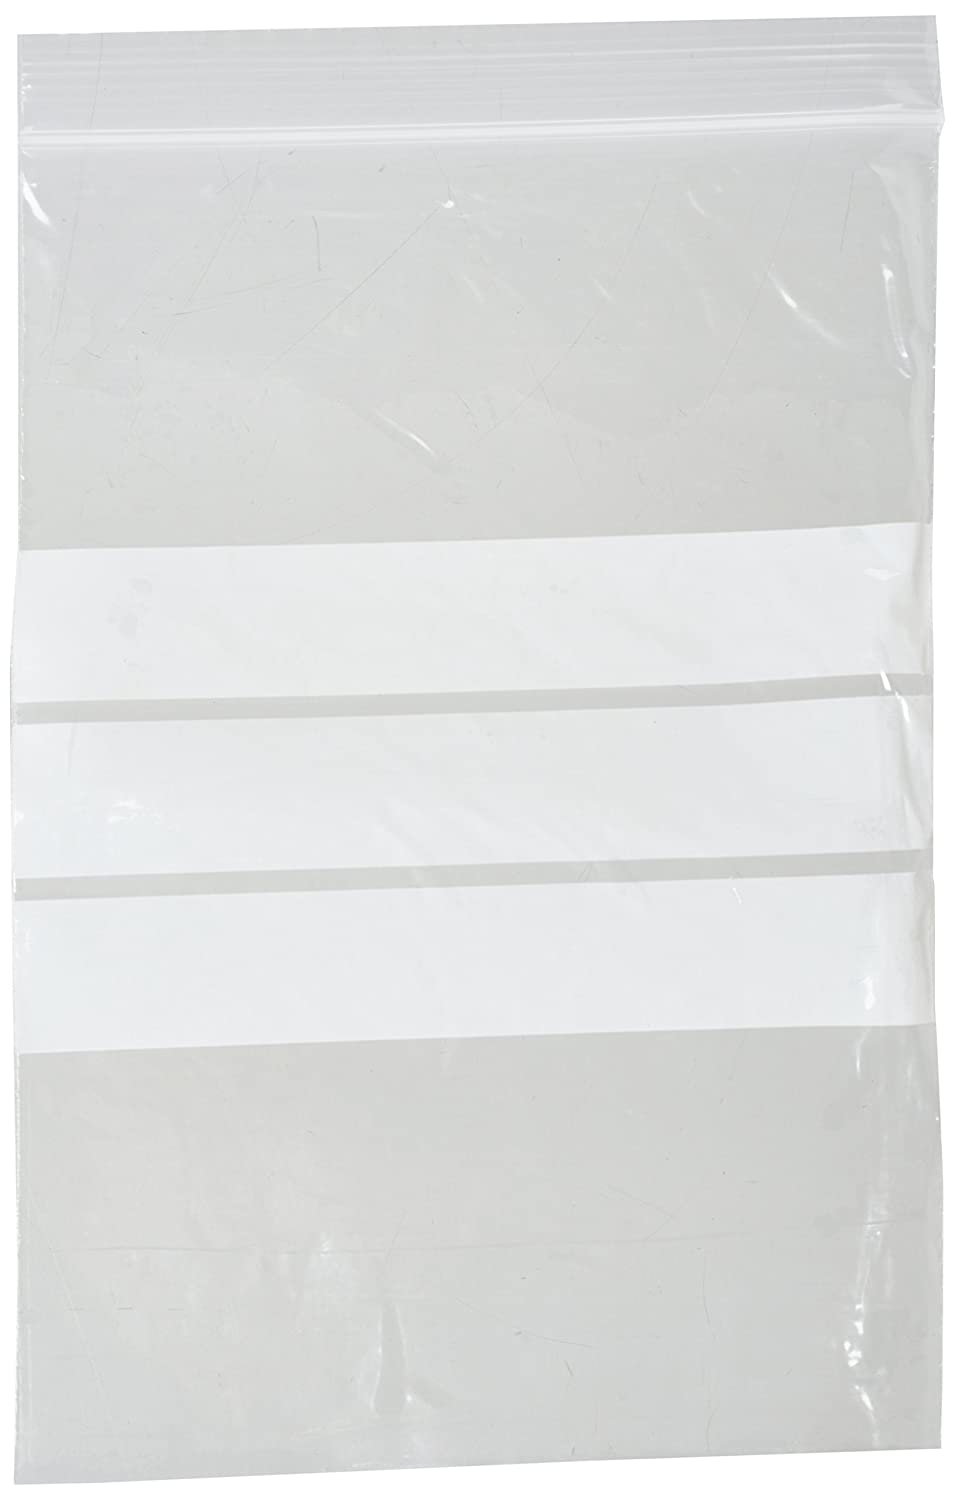 Edulab 153-527 Zip Lock Bags, ISG, 125 mm x 190 mm (Pack of 1000)